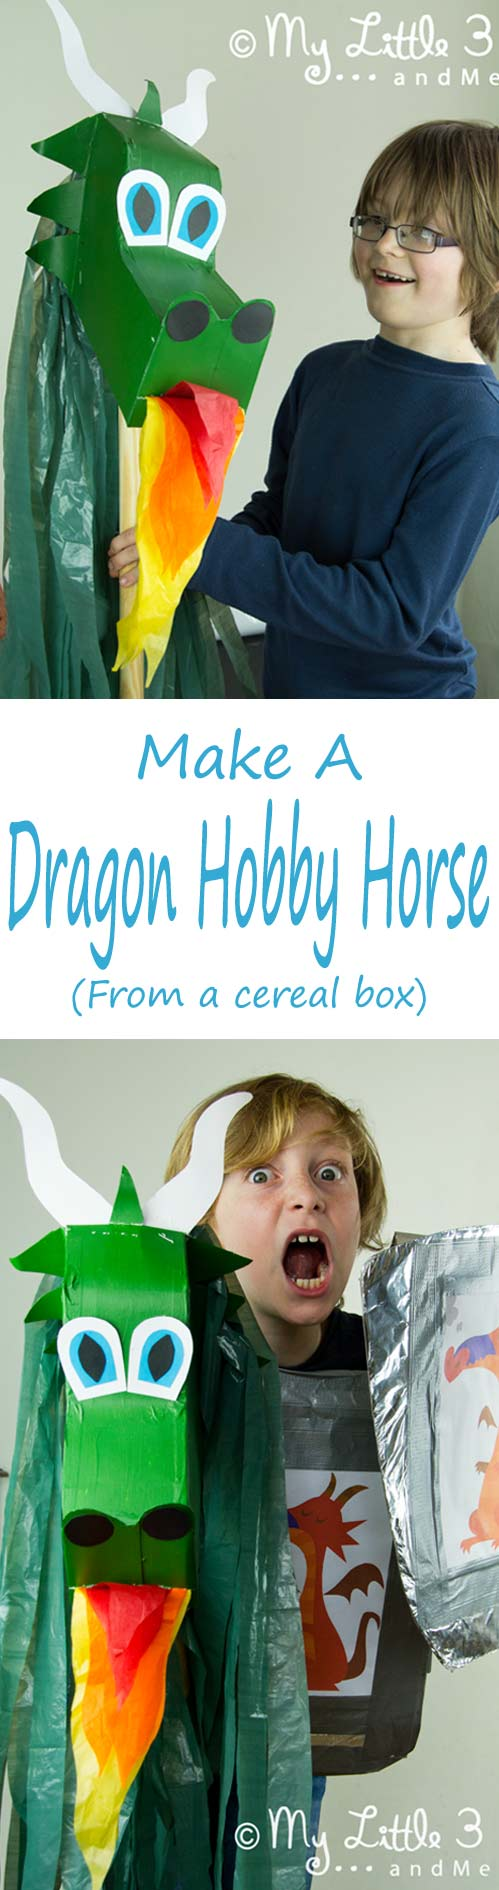 Dragon-Hobby-Horse-Pin